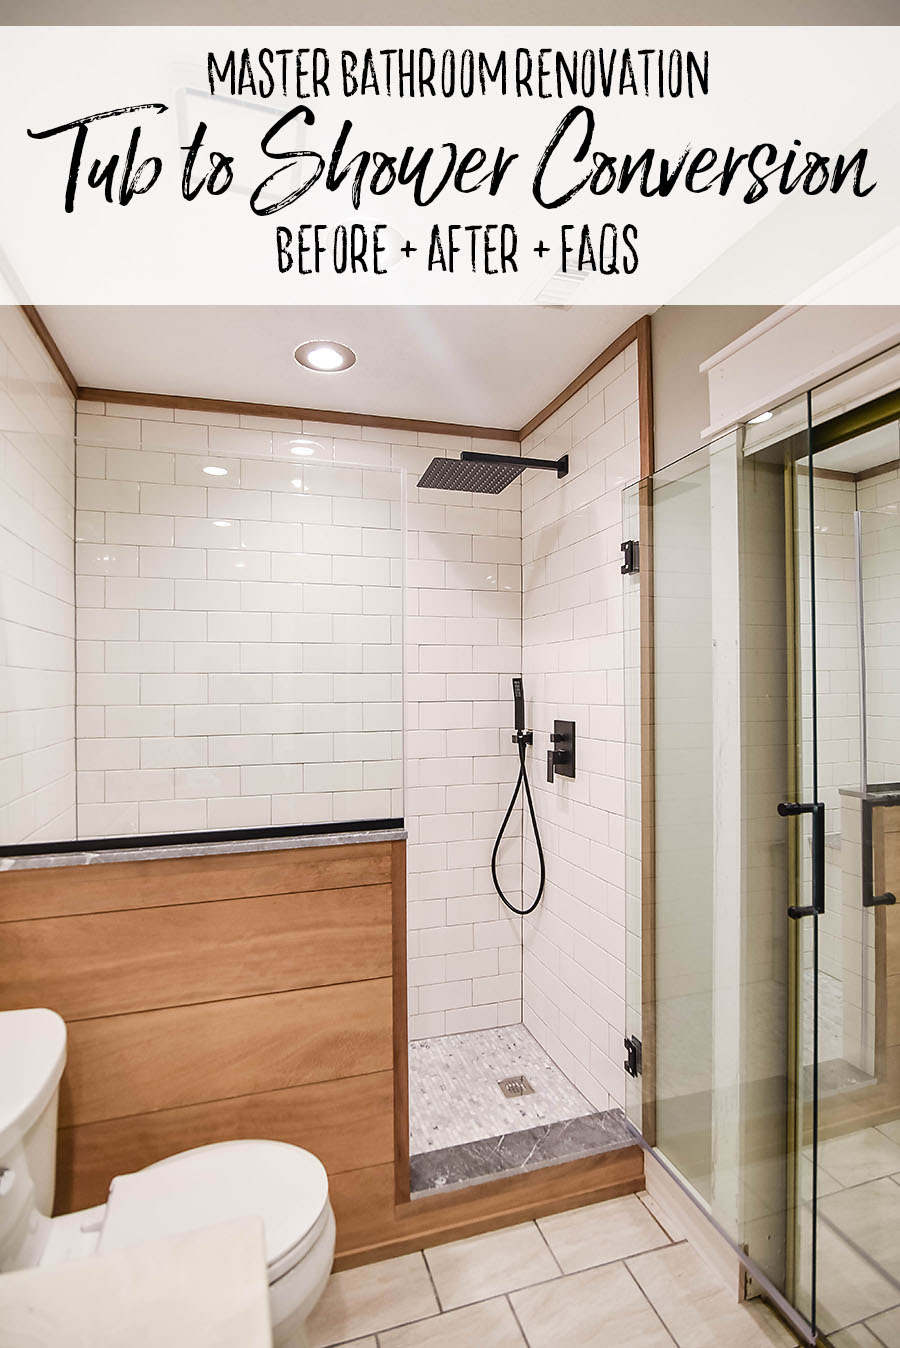 Master Bathroom Renovation Converting A Bathtub Into A Walk In Shower Our Handcrafted Life